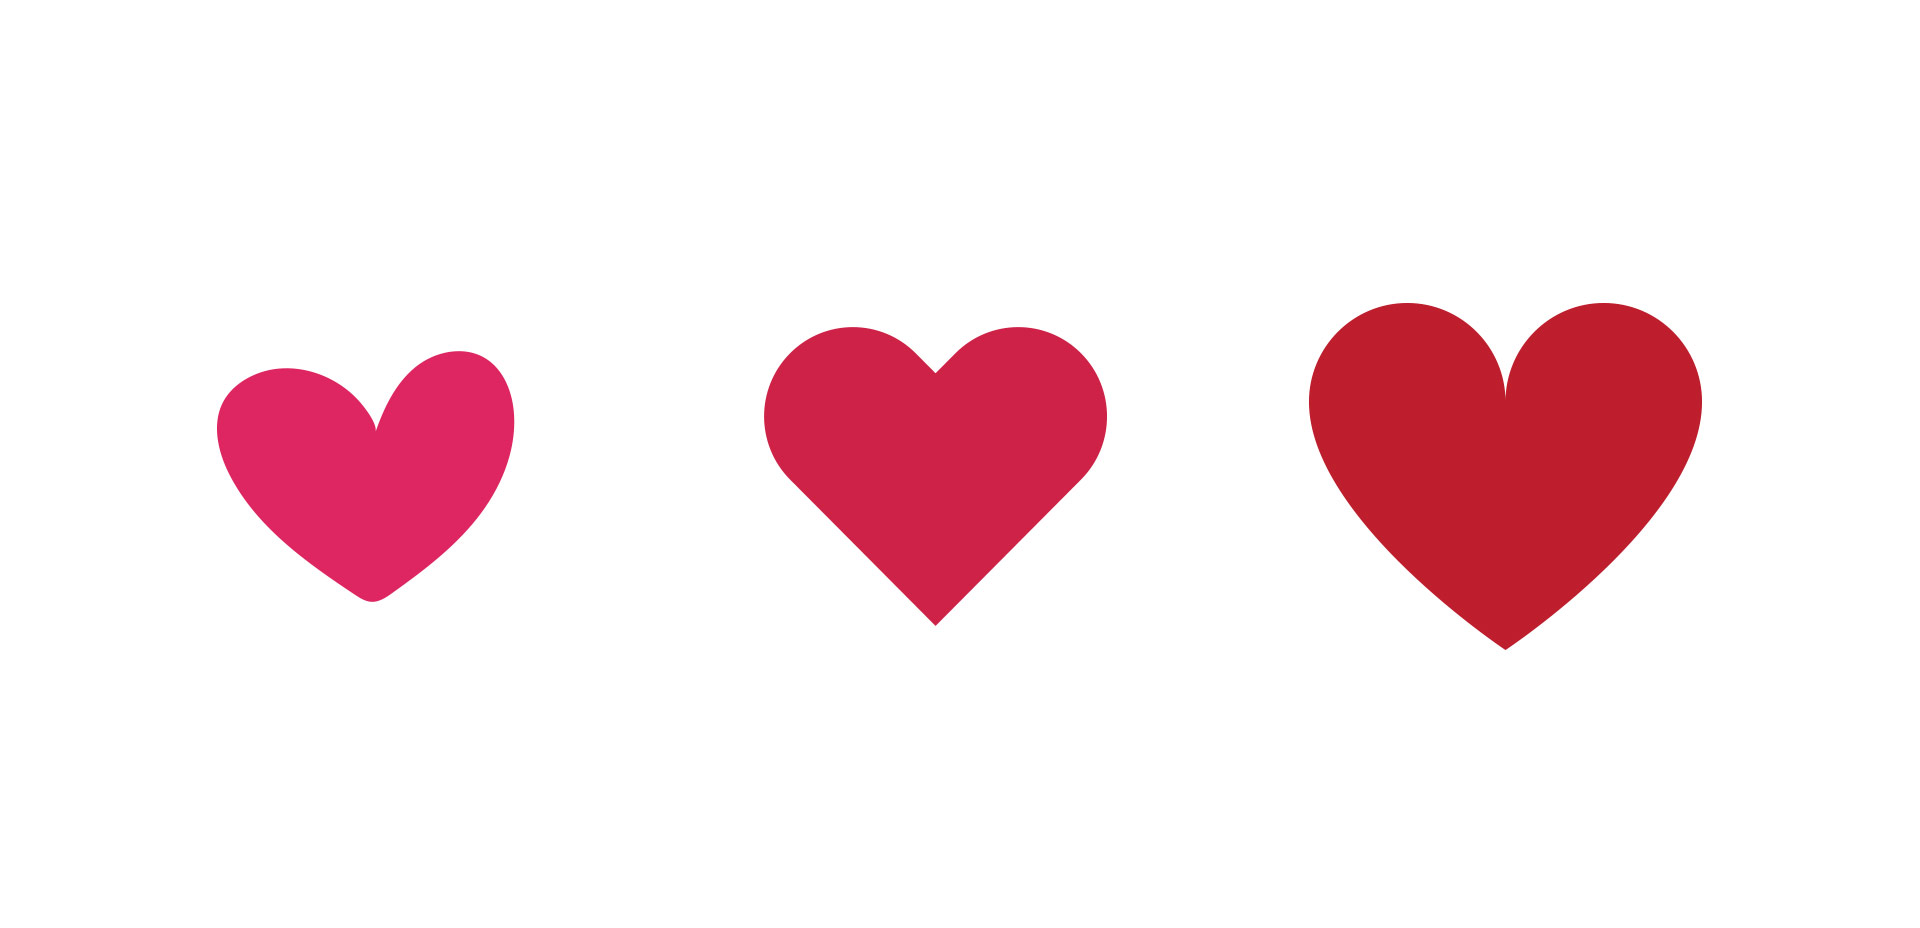 3 Ways to Create a Heart Shape in Adobe Illustrator - Every-Tuesday